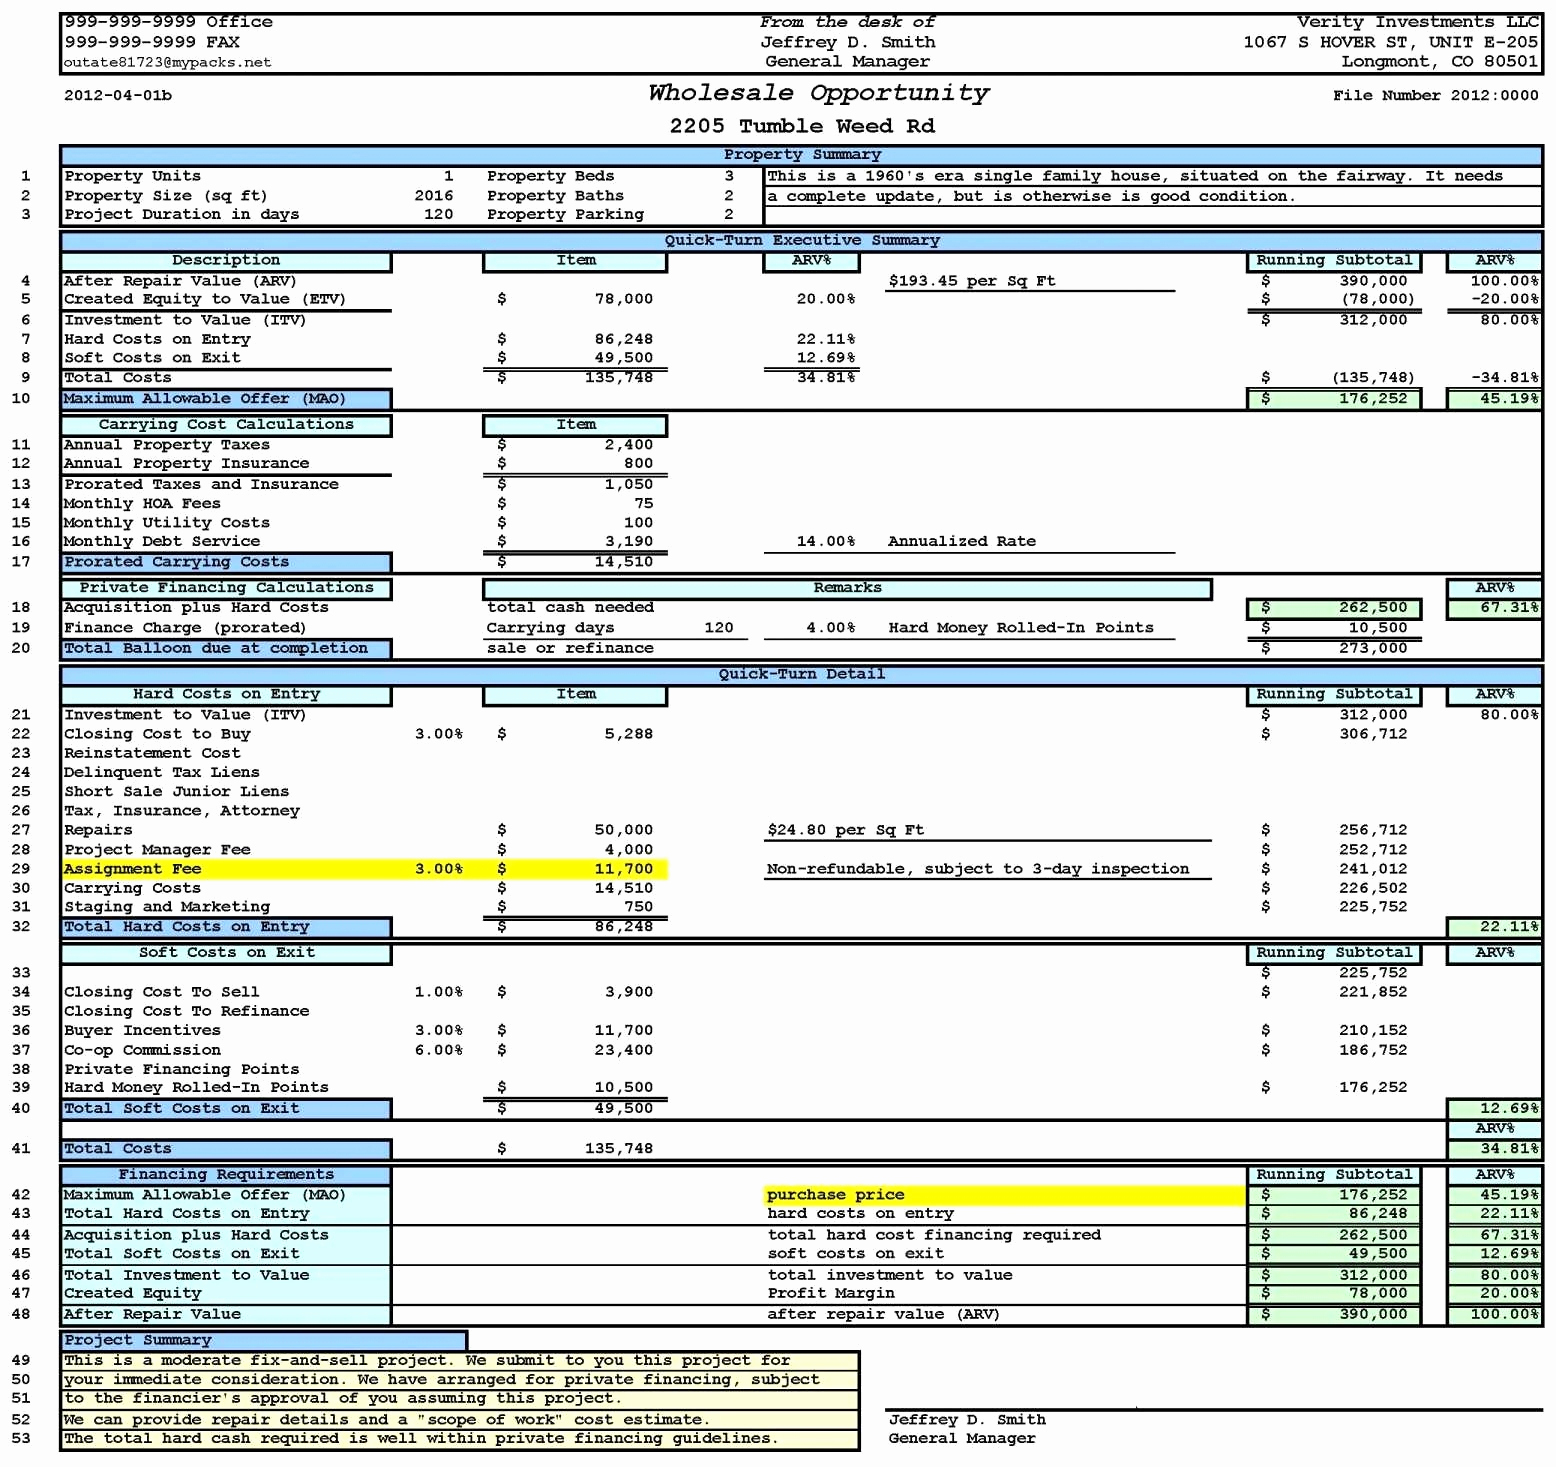 Goodwill Donation Spreadsheet Template Beautiful Goodwill Donation With Donation Spreadsheet Template